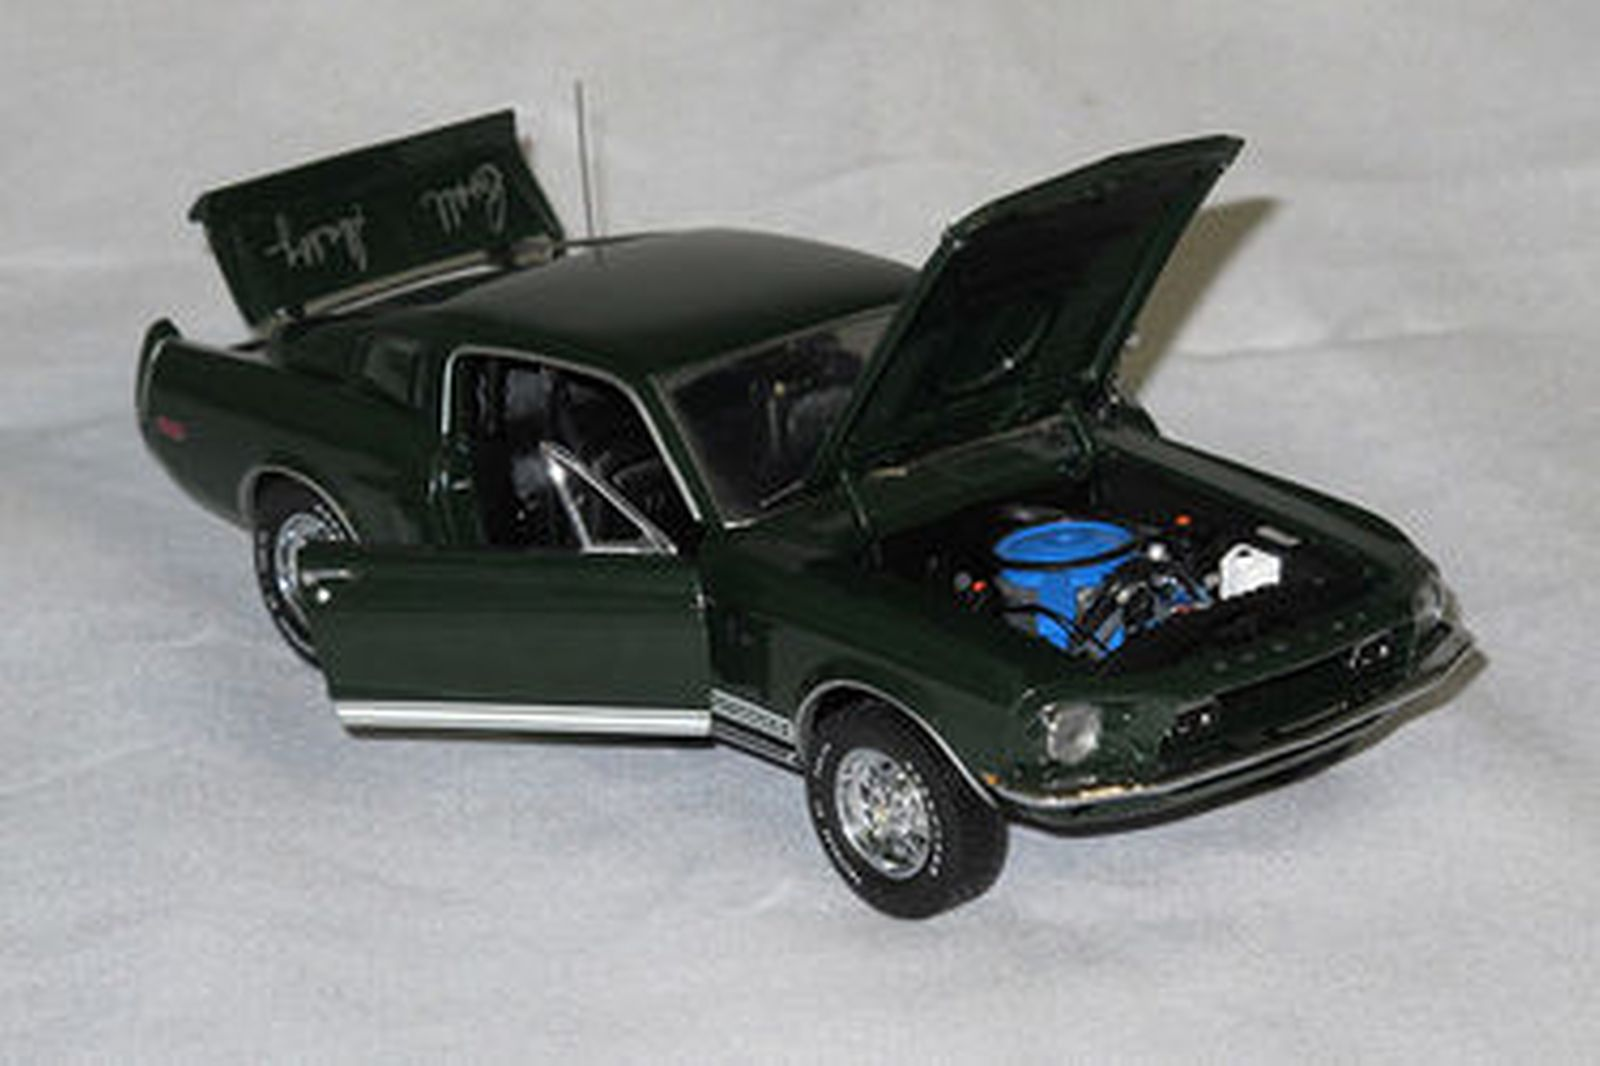 Model Car - Franklin Mint 1968 Shelby GT500, Signed by Carroll Shelby with Certificate (Scale 1:24)